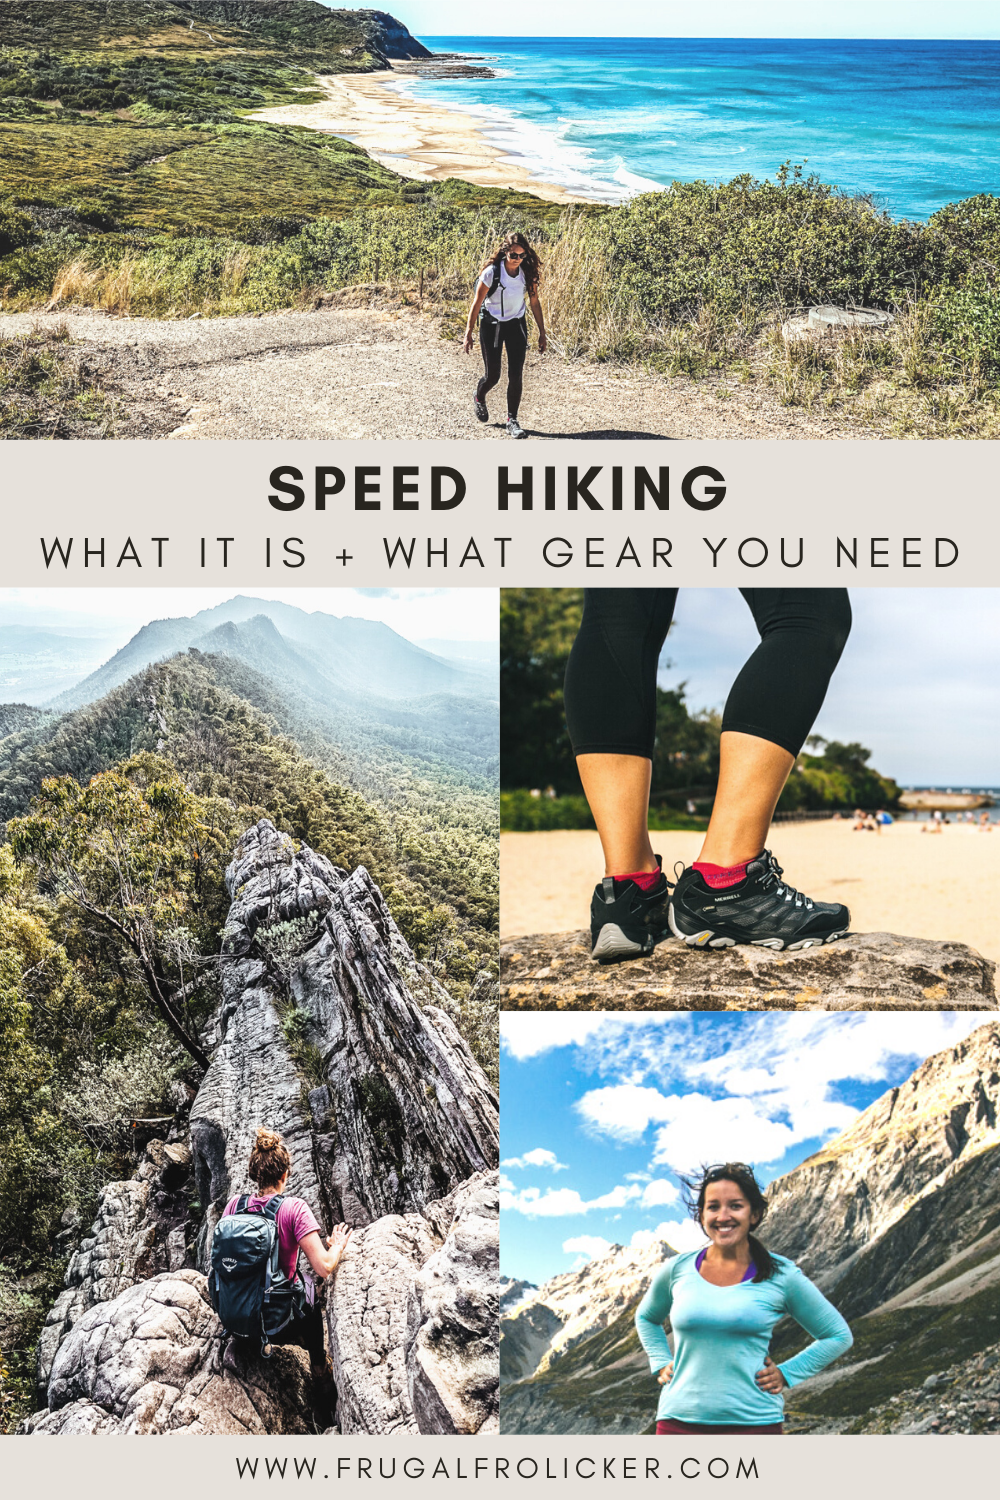 Speed hiking / Power hiking